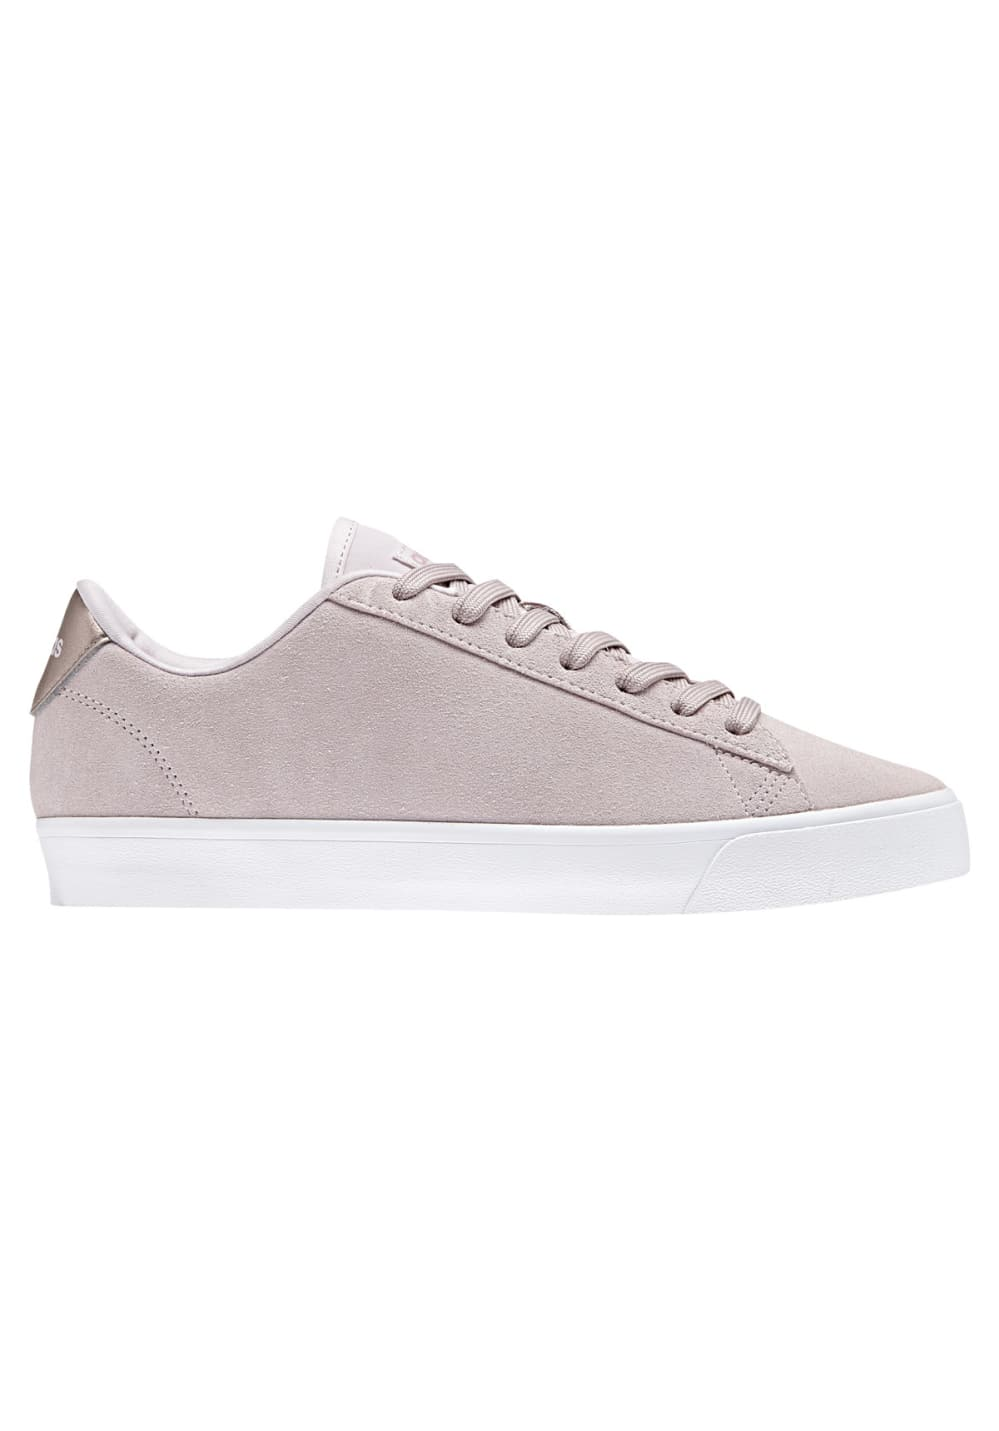 buy popular cc0b3 4984d ... adidas neo Cf Daily Qt Cl - Sneaker for Women - Pink. Back to Overview.  1 2. Previous